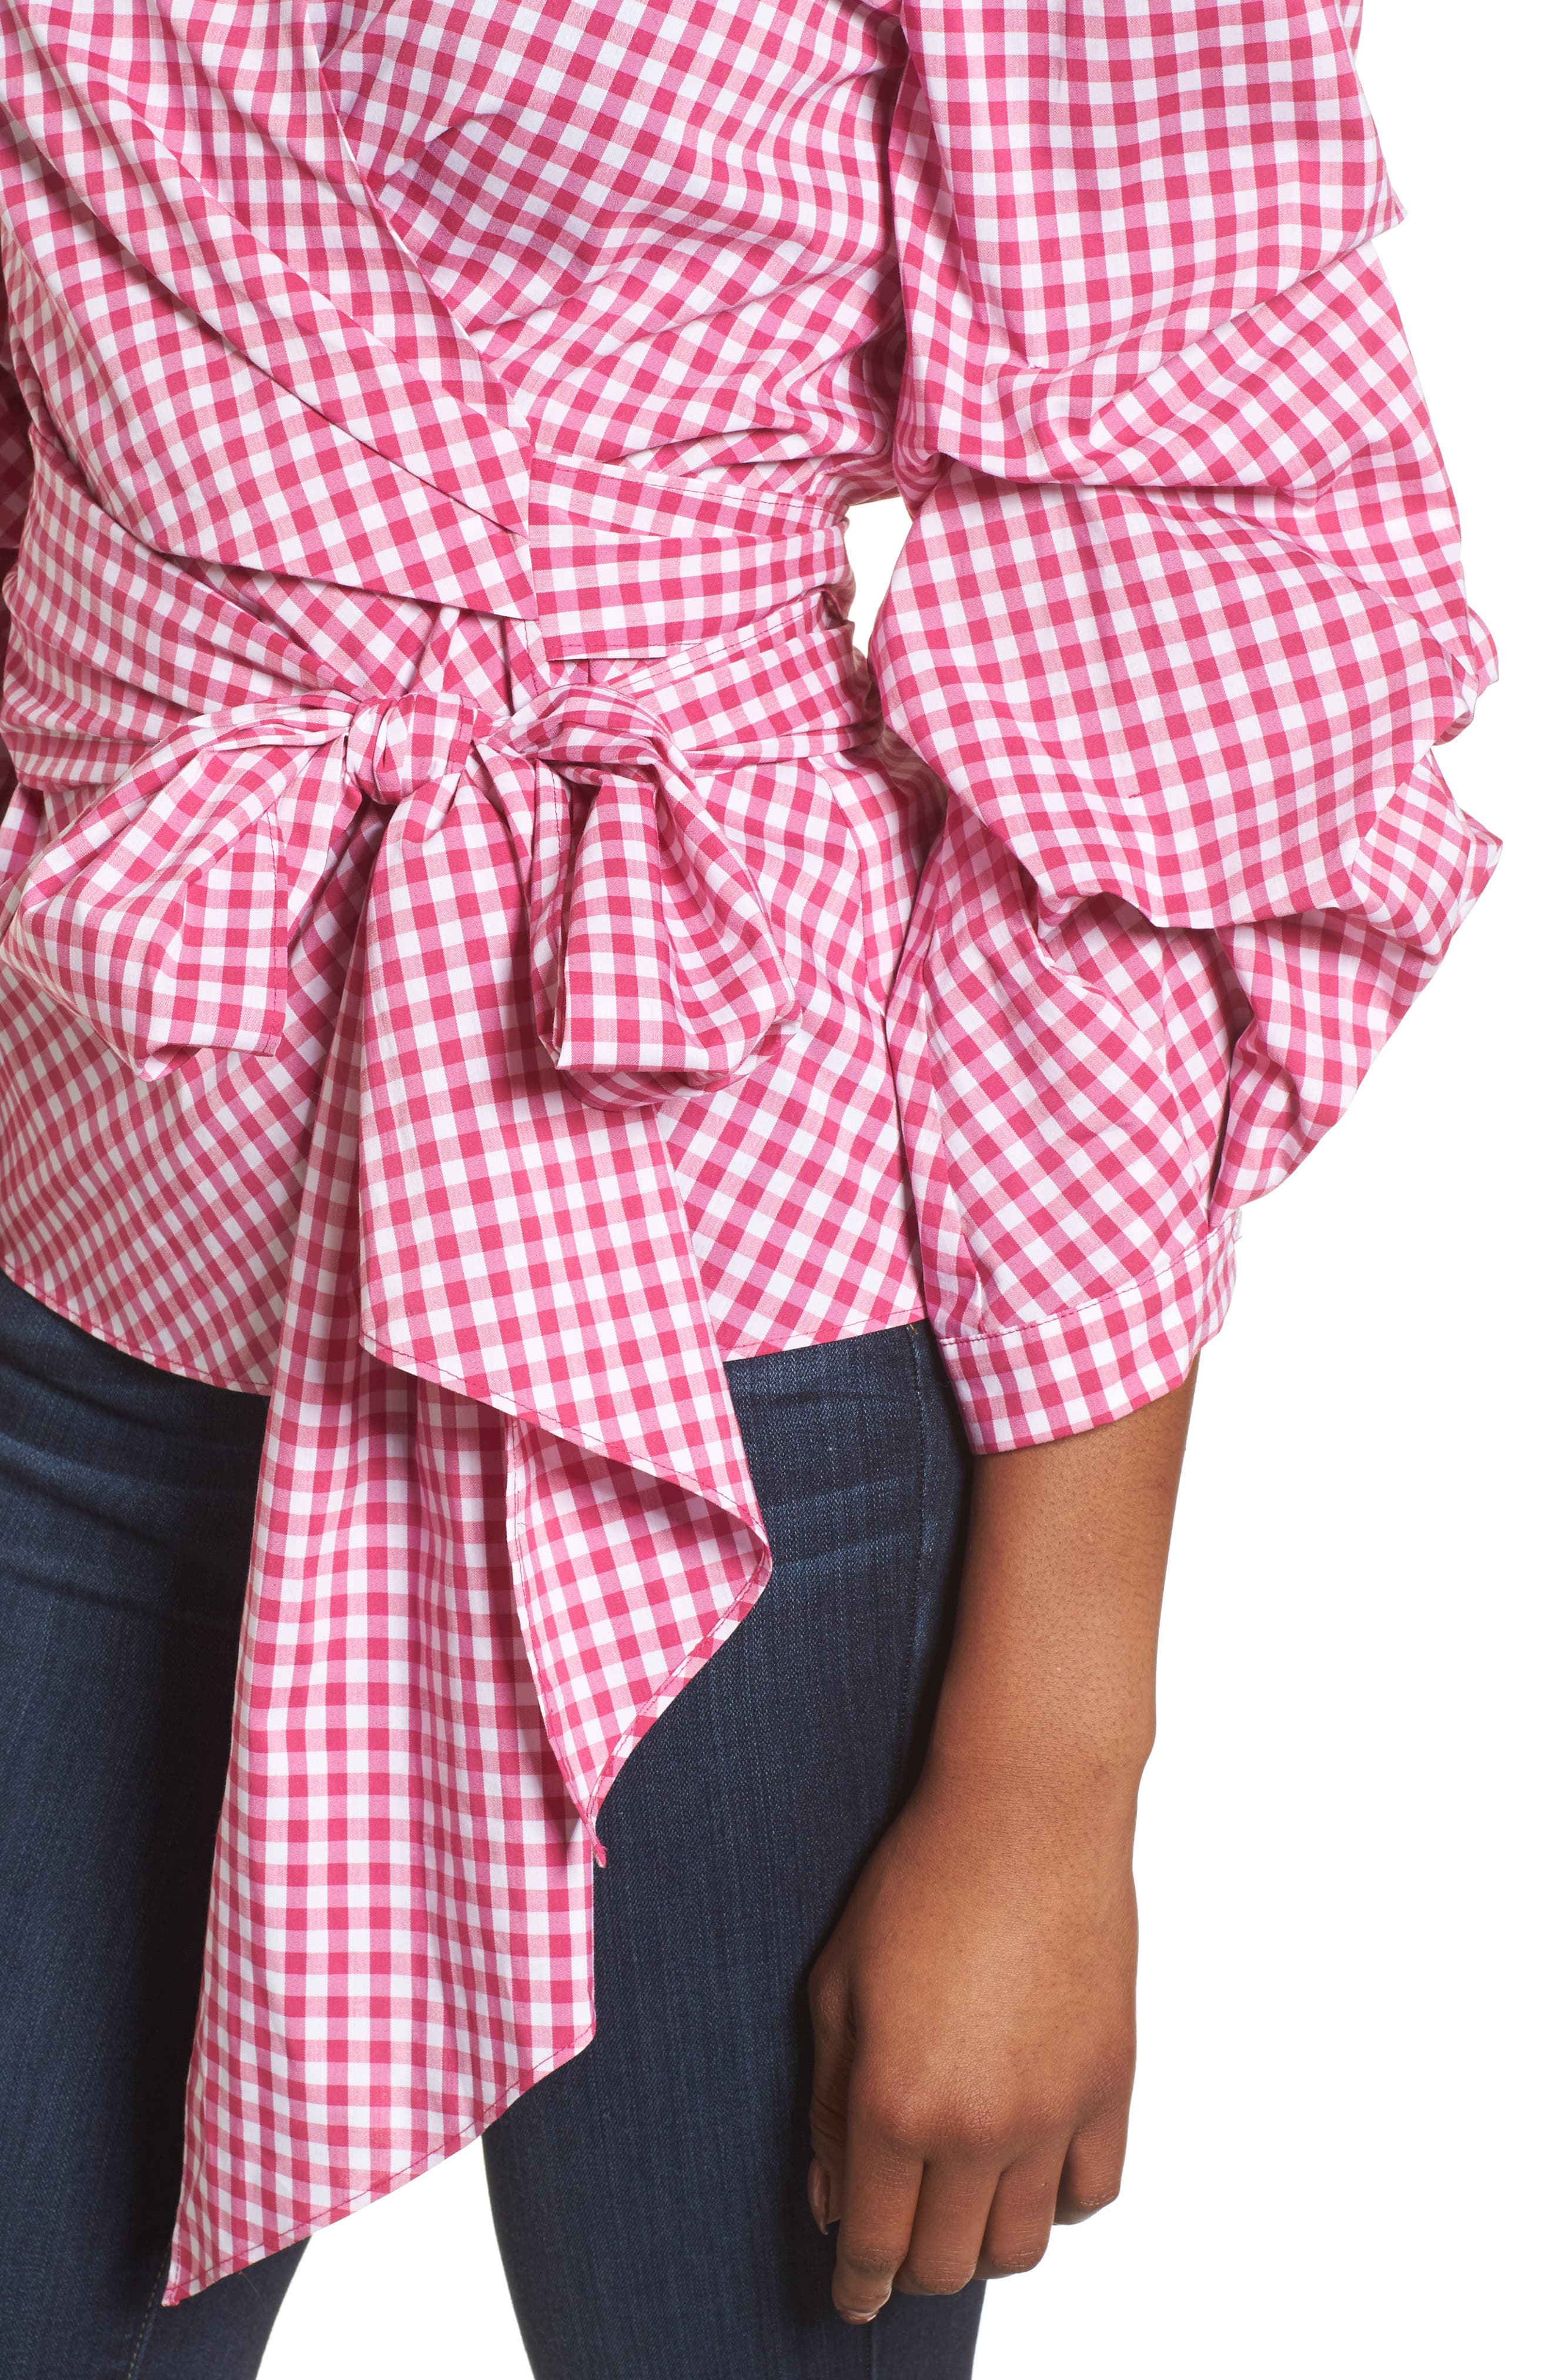 Pintuck Blouson Sleeve Wrap Top,                             Alternate thumbnail 4, color,                             Pink- White Gingham